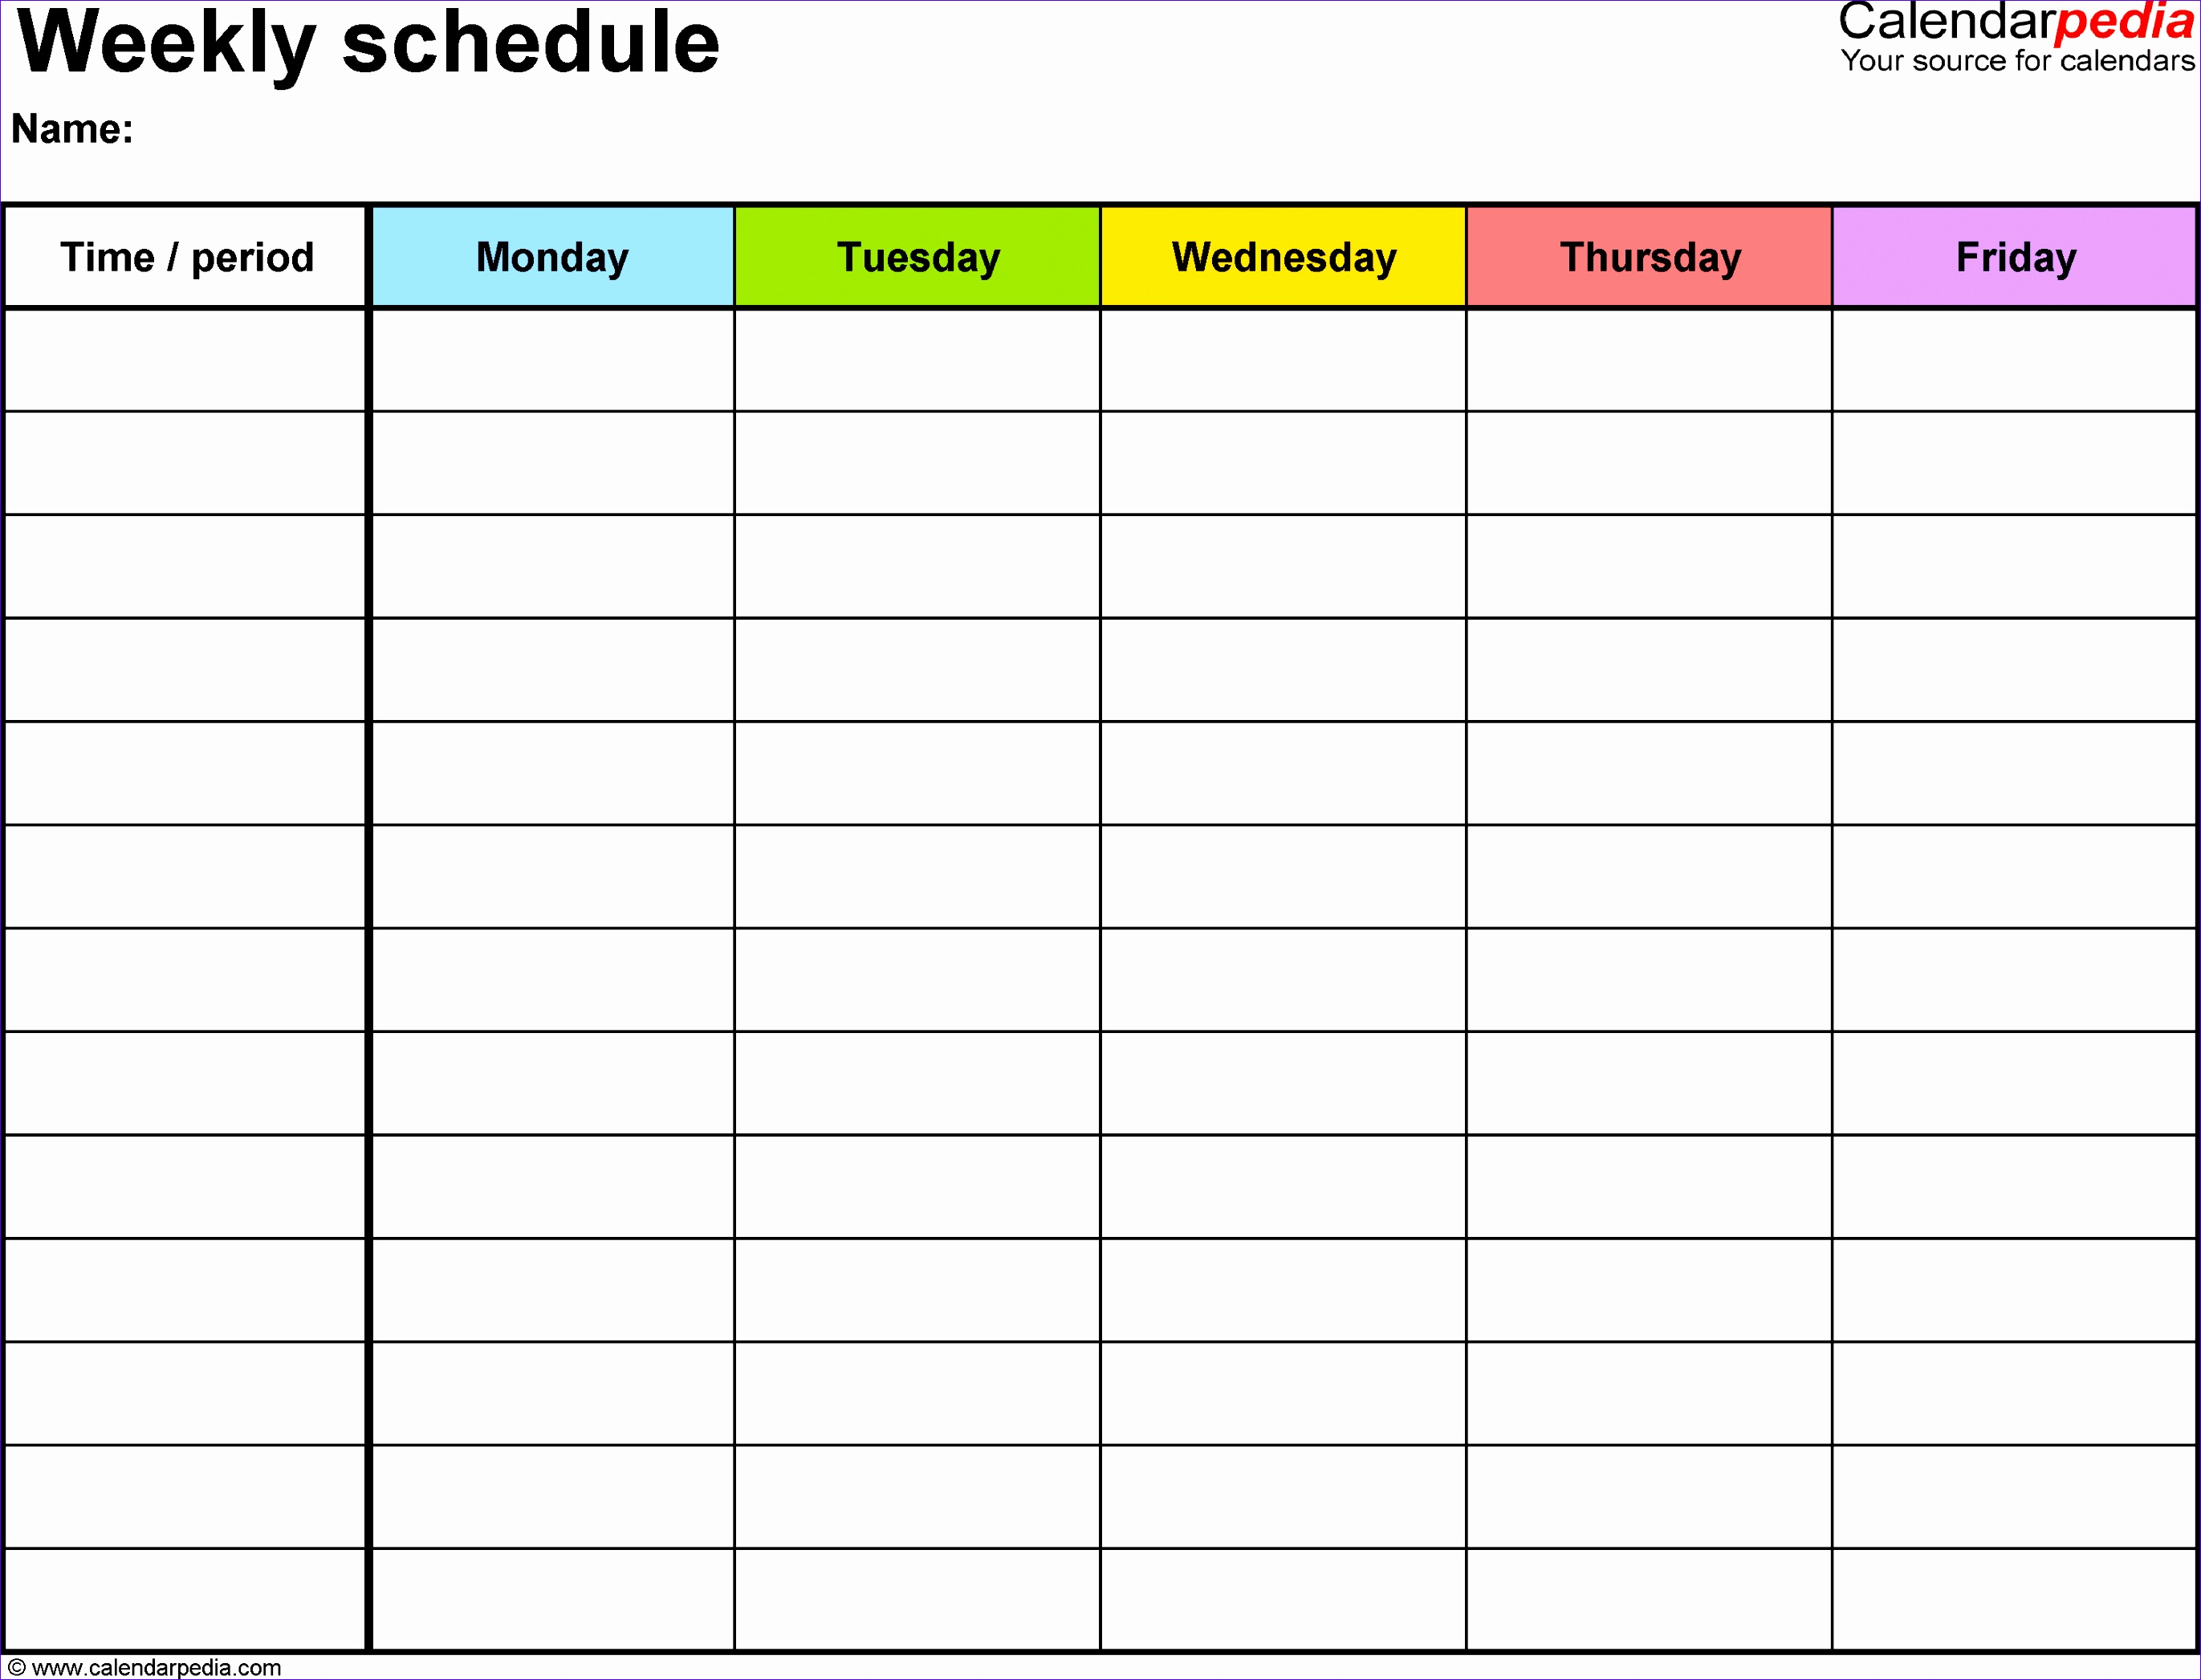 Excel 2007 Timeline Template Aqhlx Inspirational Free Weekly Schedule Templates for Excel 18 Templates